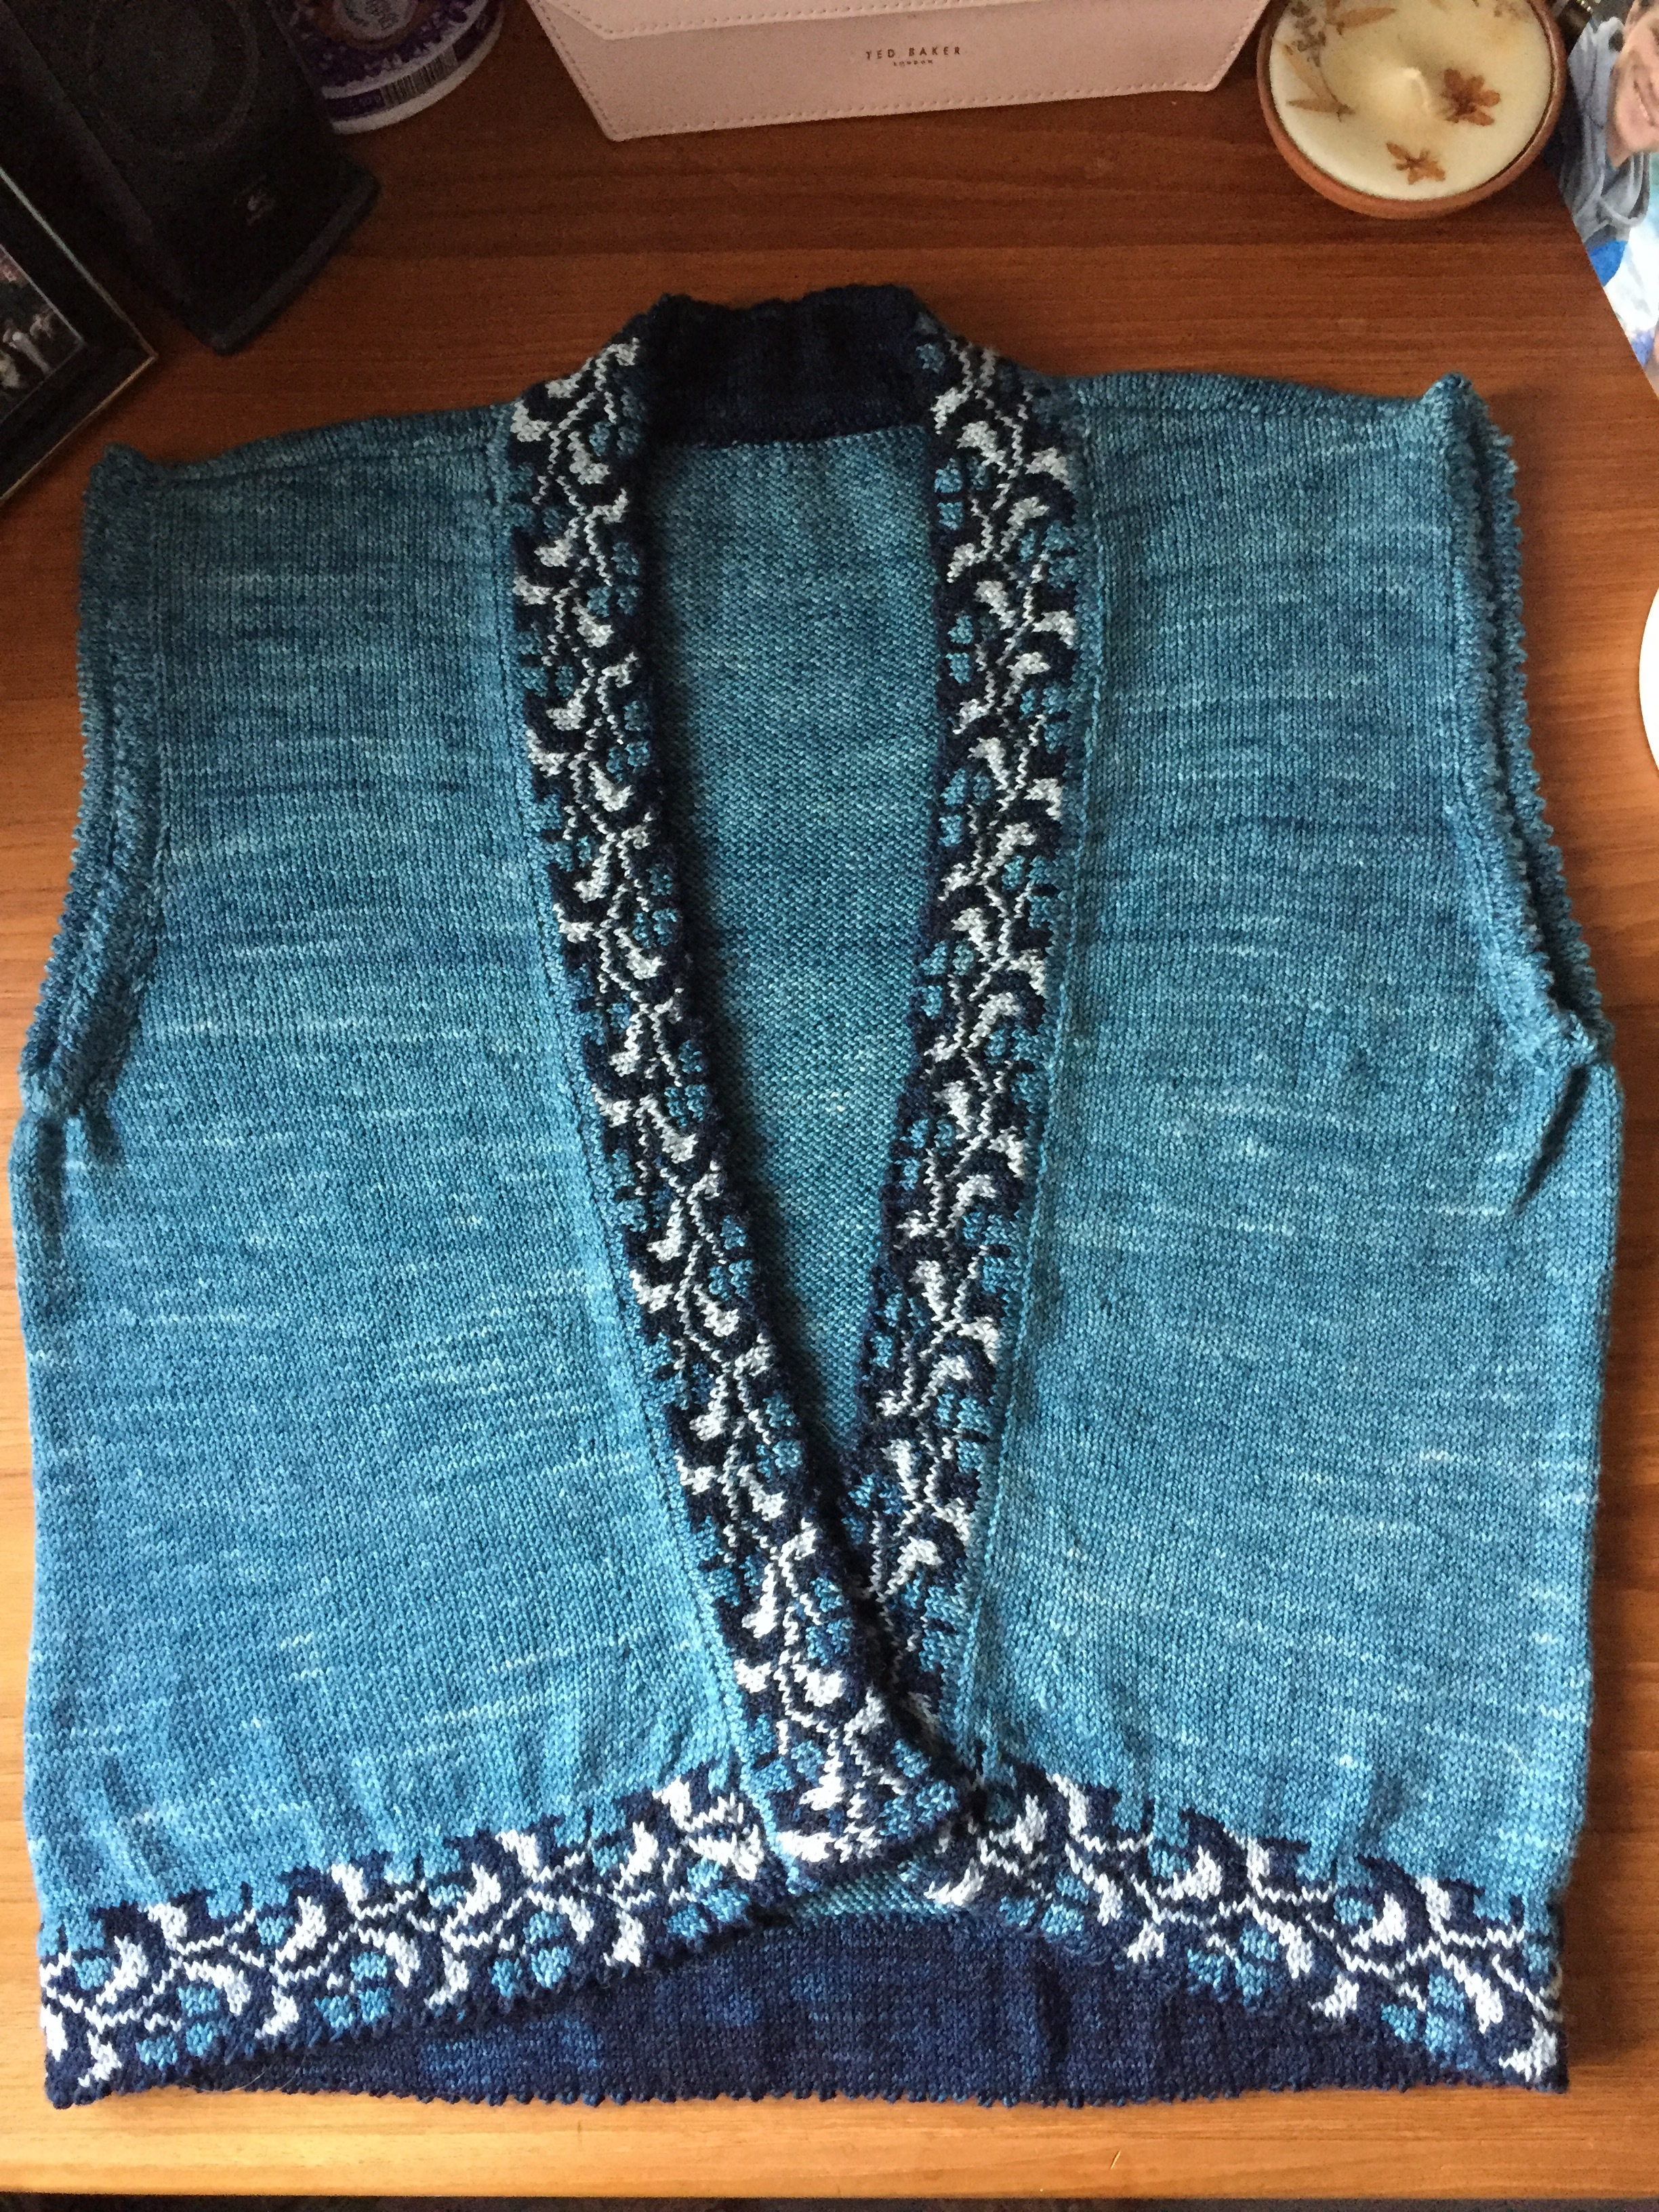 Janice - Norweign vest entitled Ambrosia Vest using KPPPM for upcoming knitting cruise along the coast of Norway. Lots of steeking and finishing of bands with picot edging.